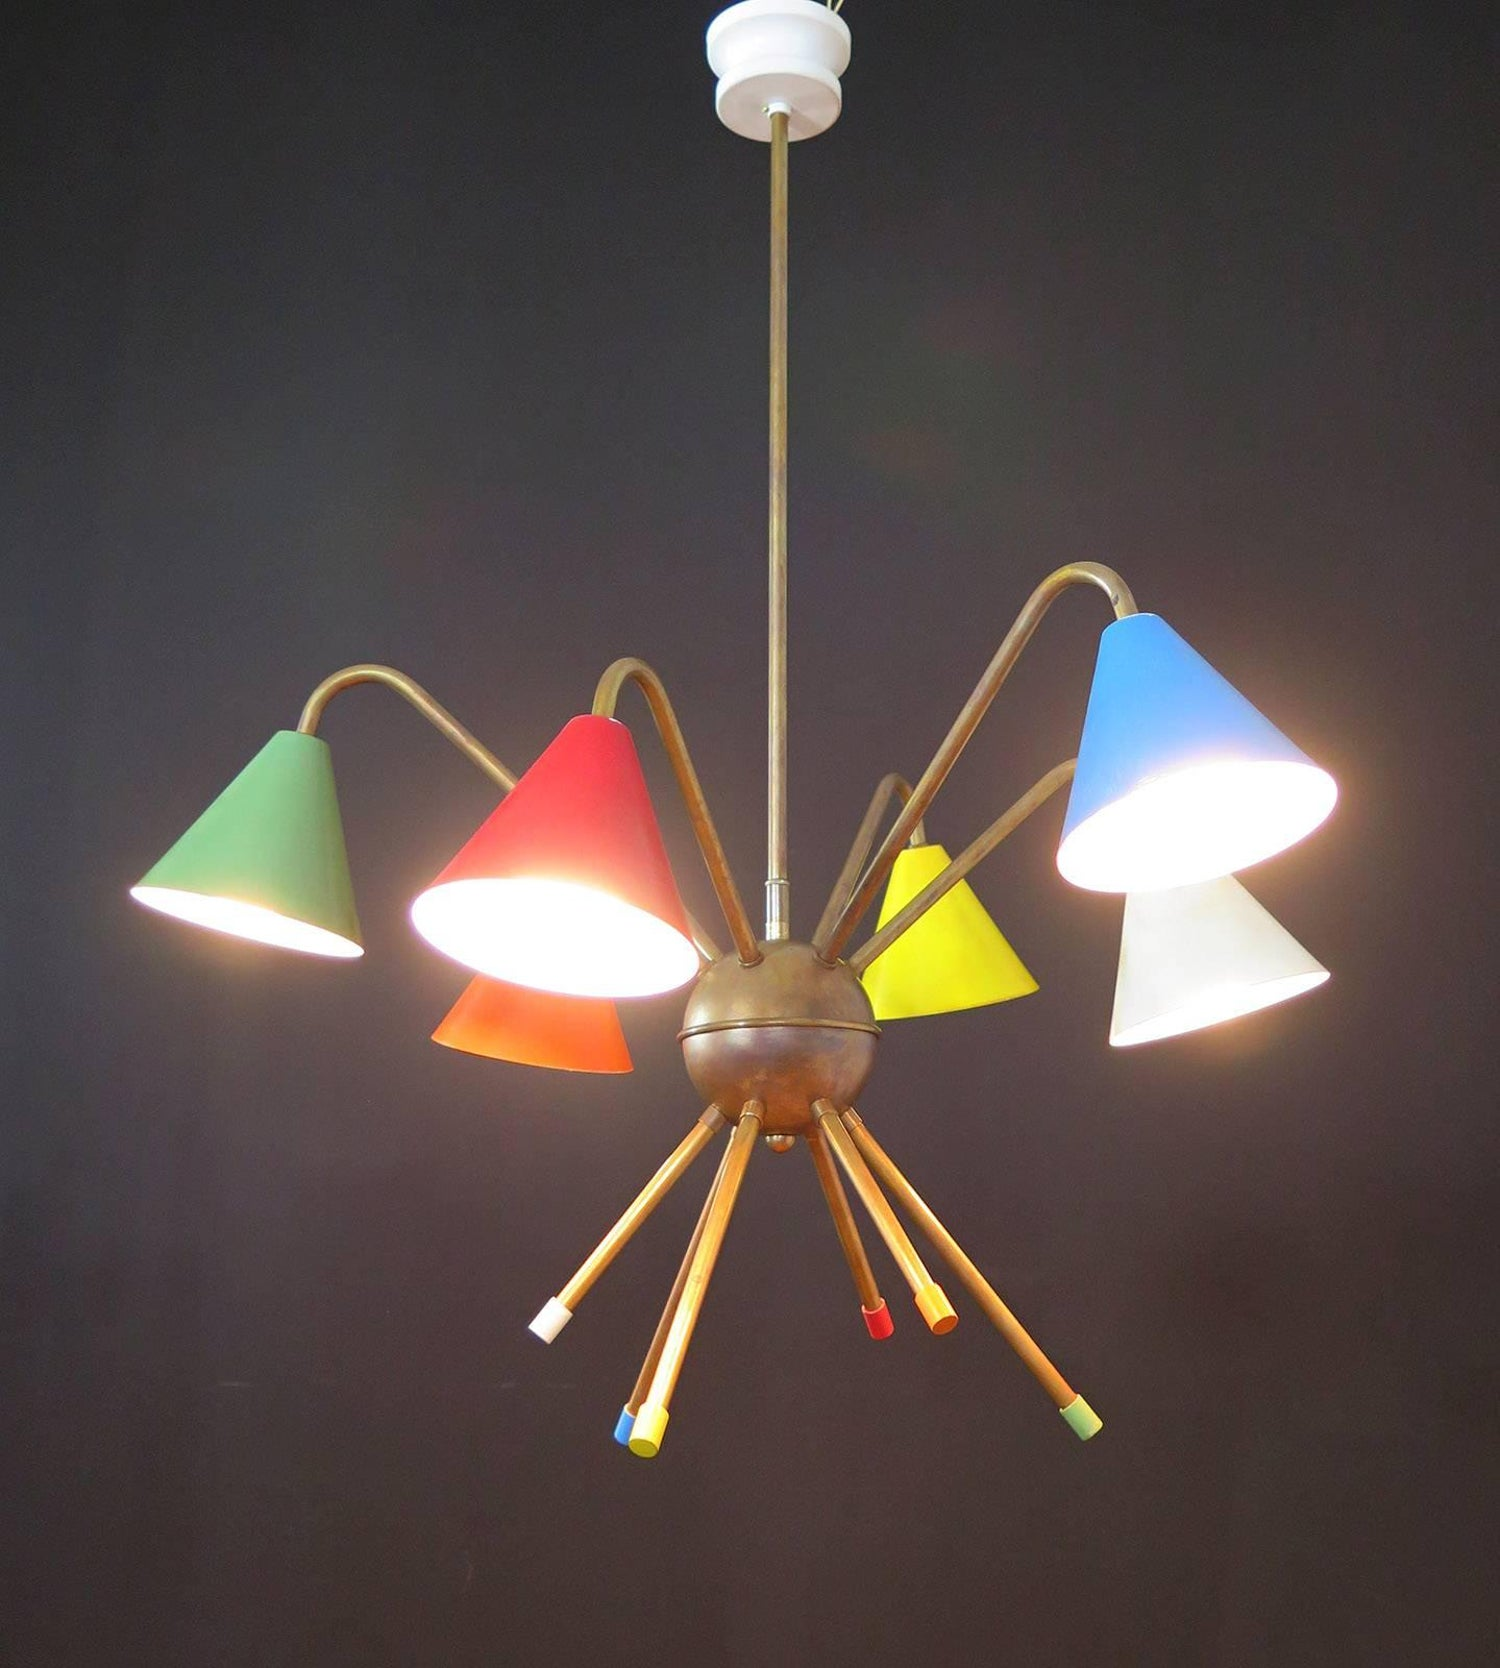 1950s italian atomic chandelier in the style of angelo lelli six 1950s italian atomic chandelier in the style of angelo lelli six cups for sale at 1stdibs arubaitofo Choice Image